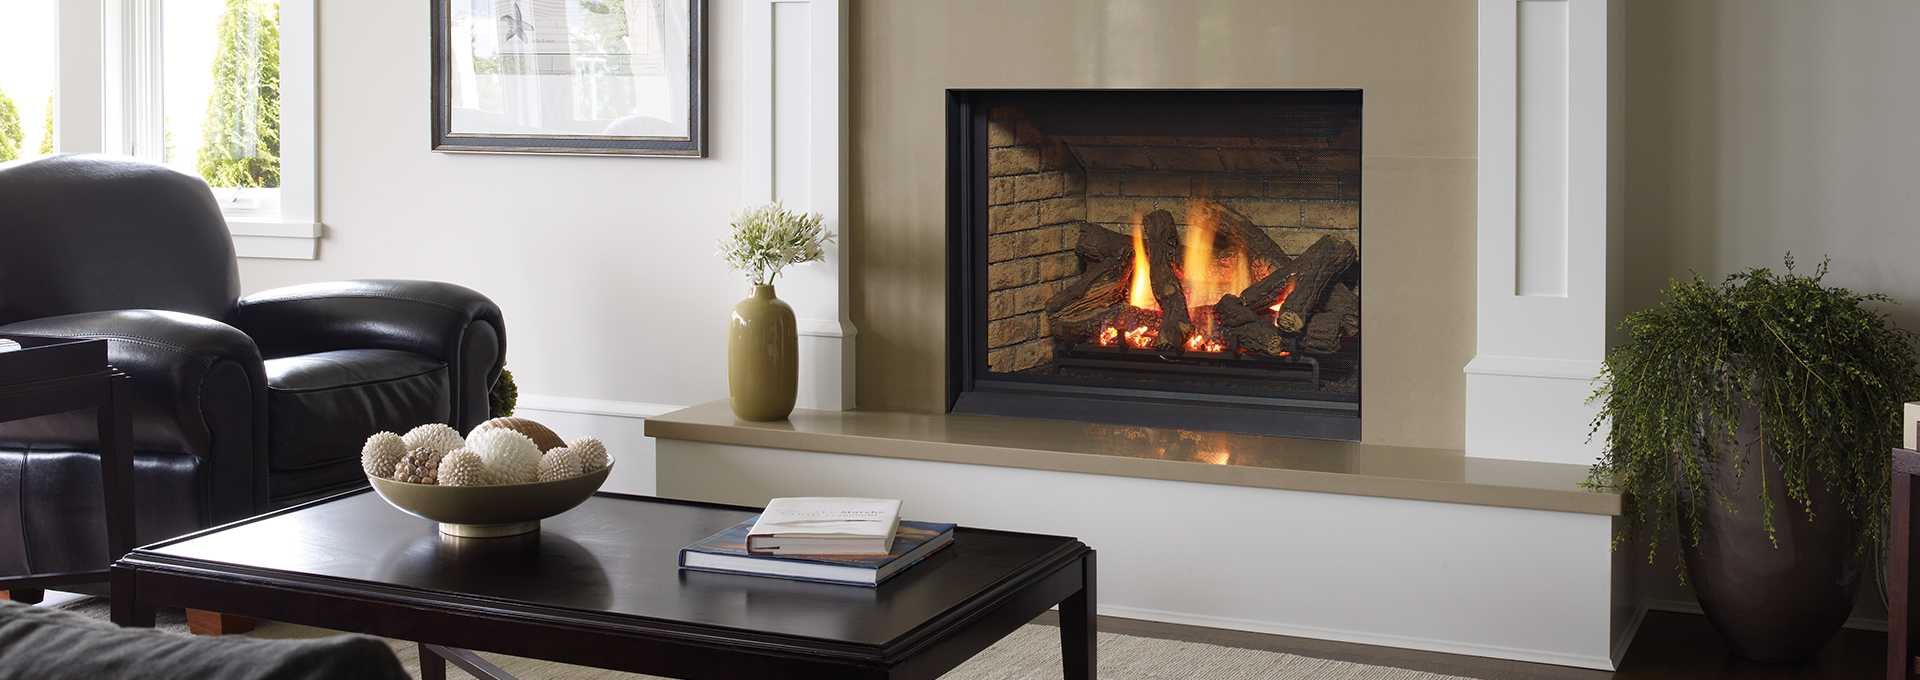 How Much Do Gas Fireplace Logs Cost Traditional Gas Fireplaces Regency Fireplace Products